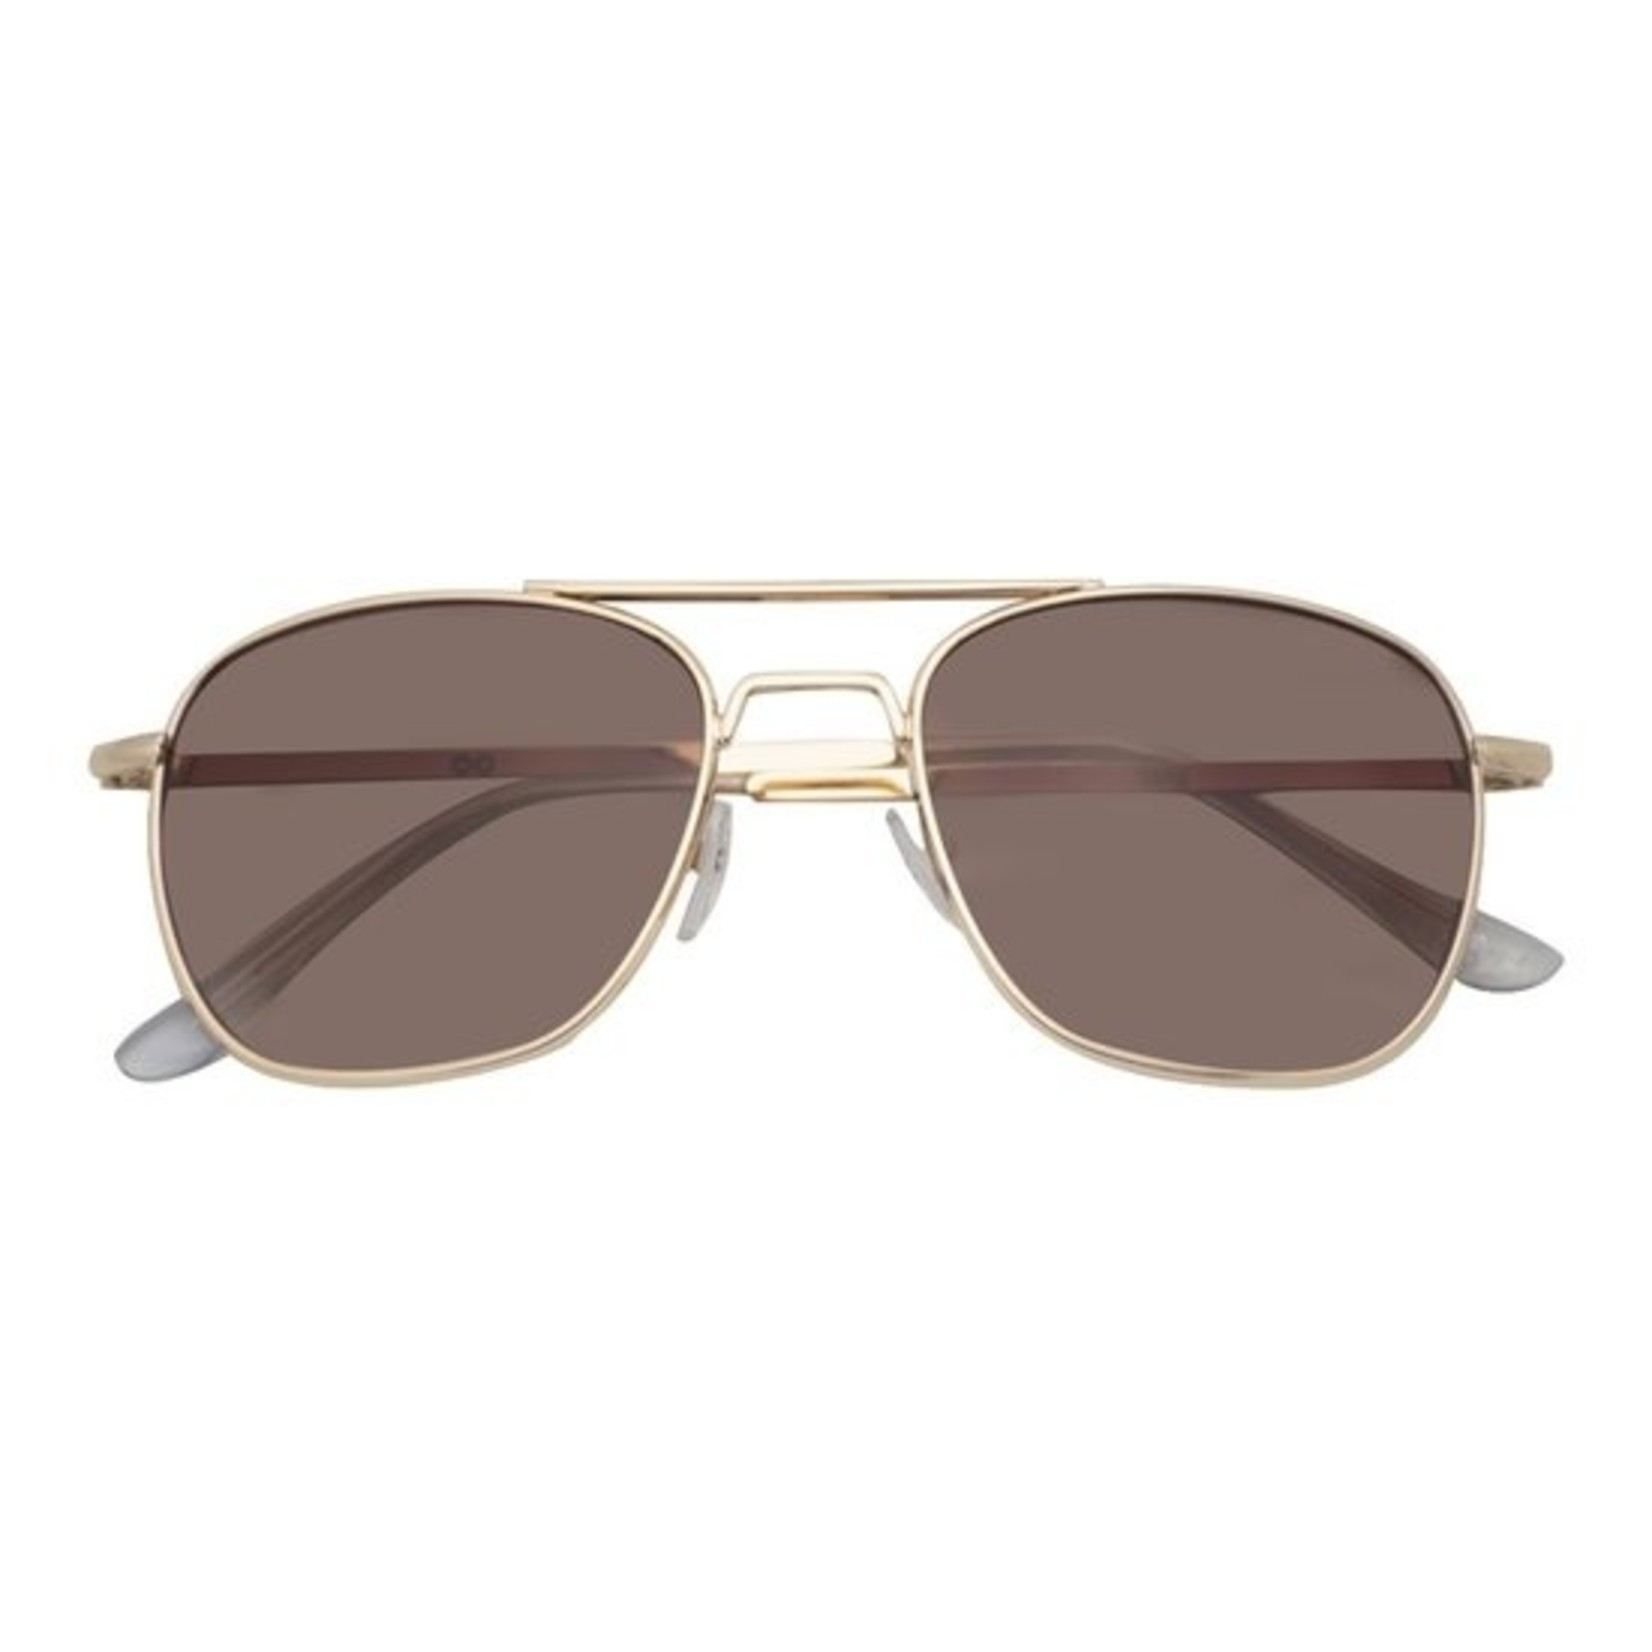 Croon Sting Satin Gold/Brown zonnebril